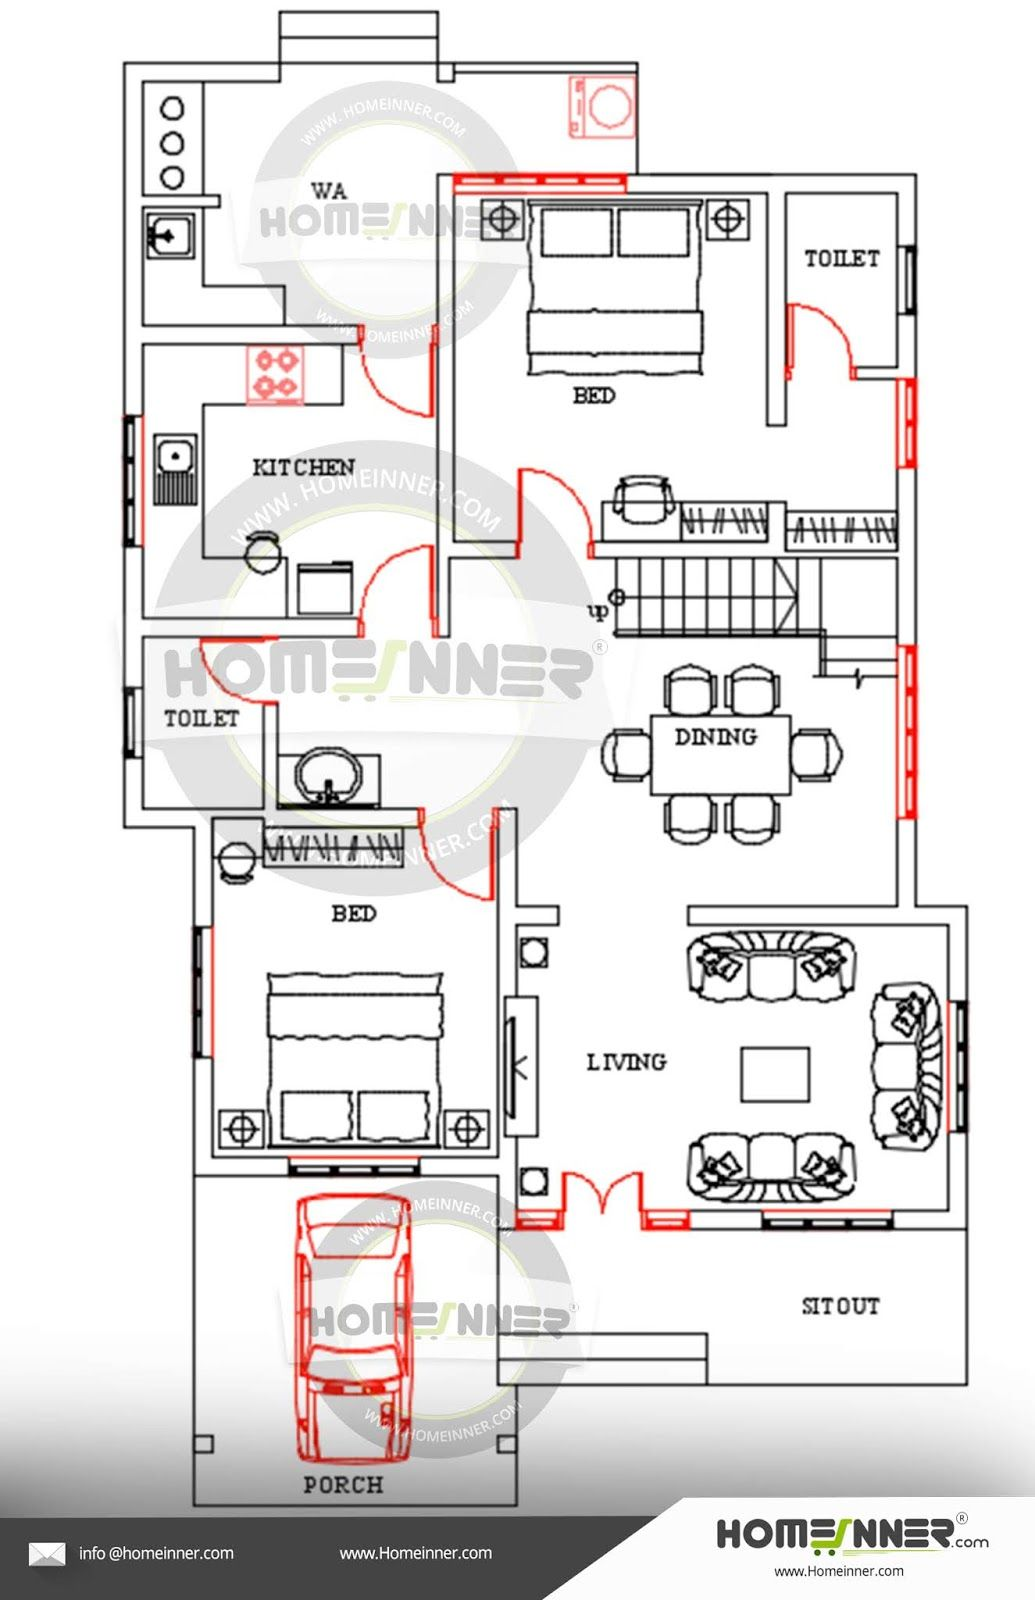 Free Kerala home design floor plan Kerala house design